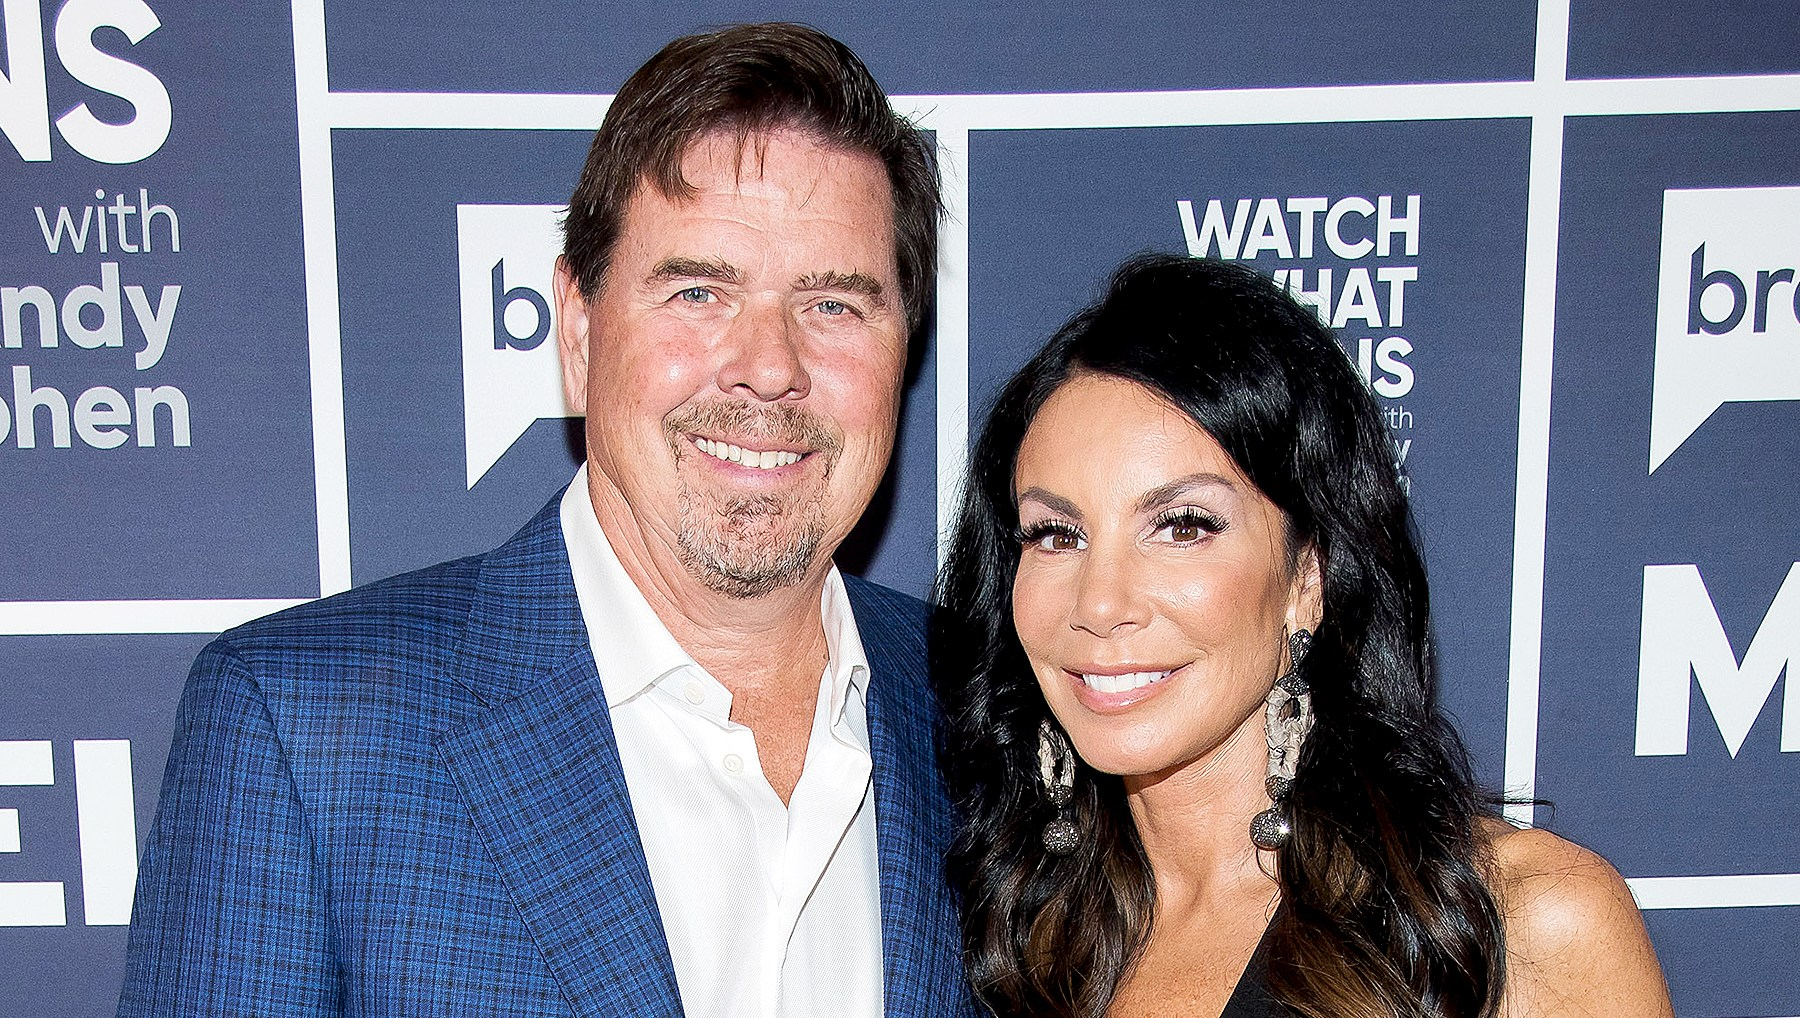 Danielle-Staub-and-Marty-Caffrey-restraining-order